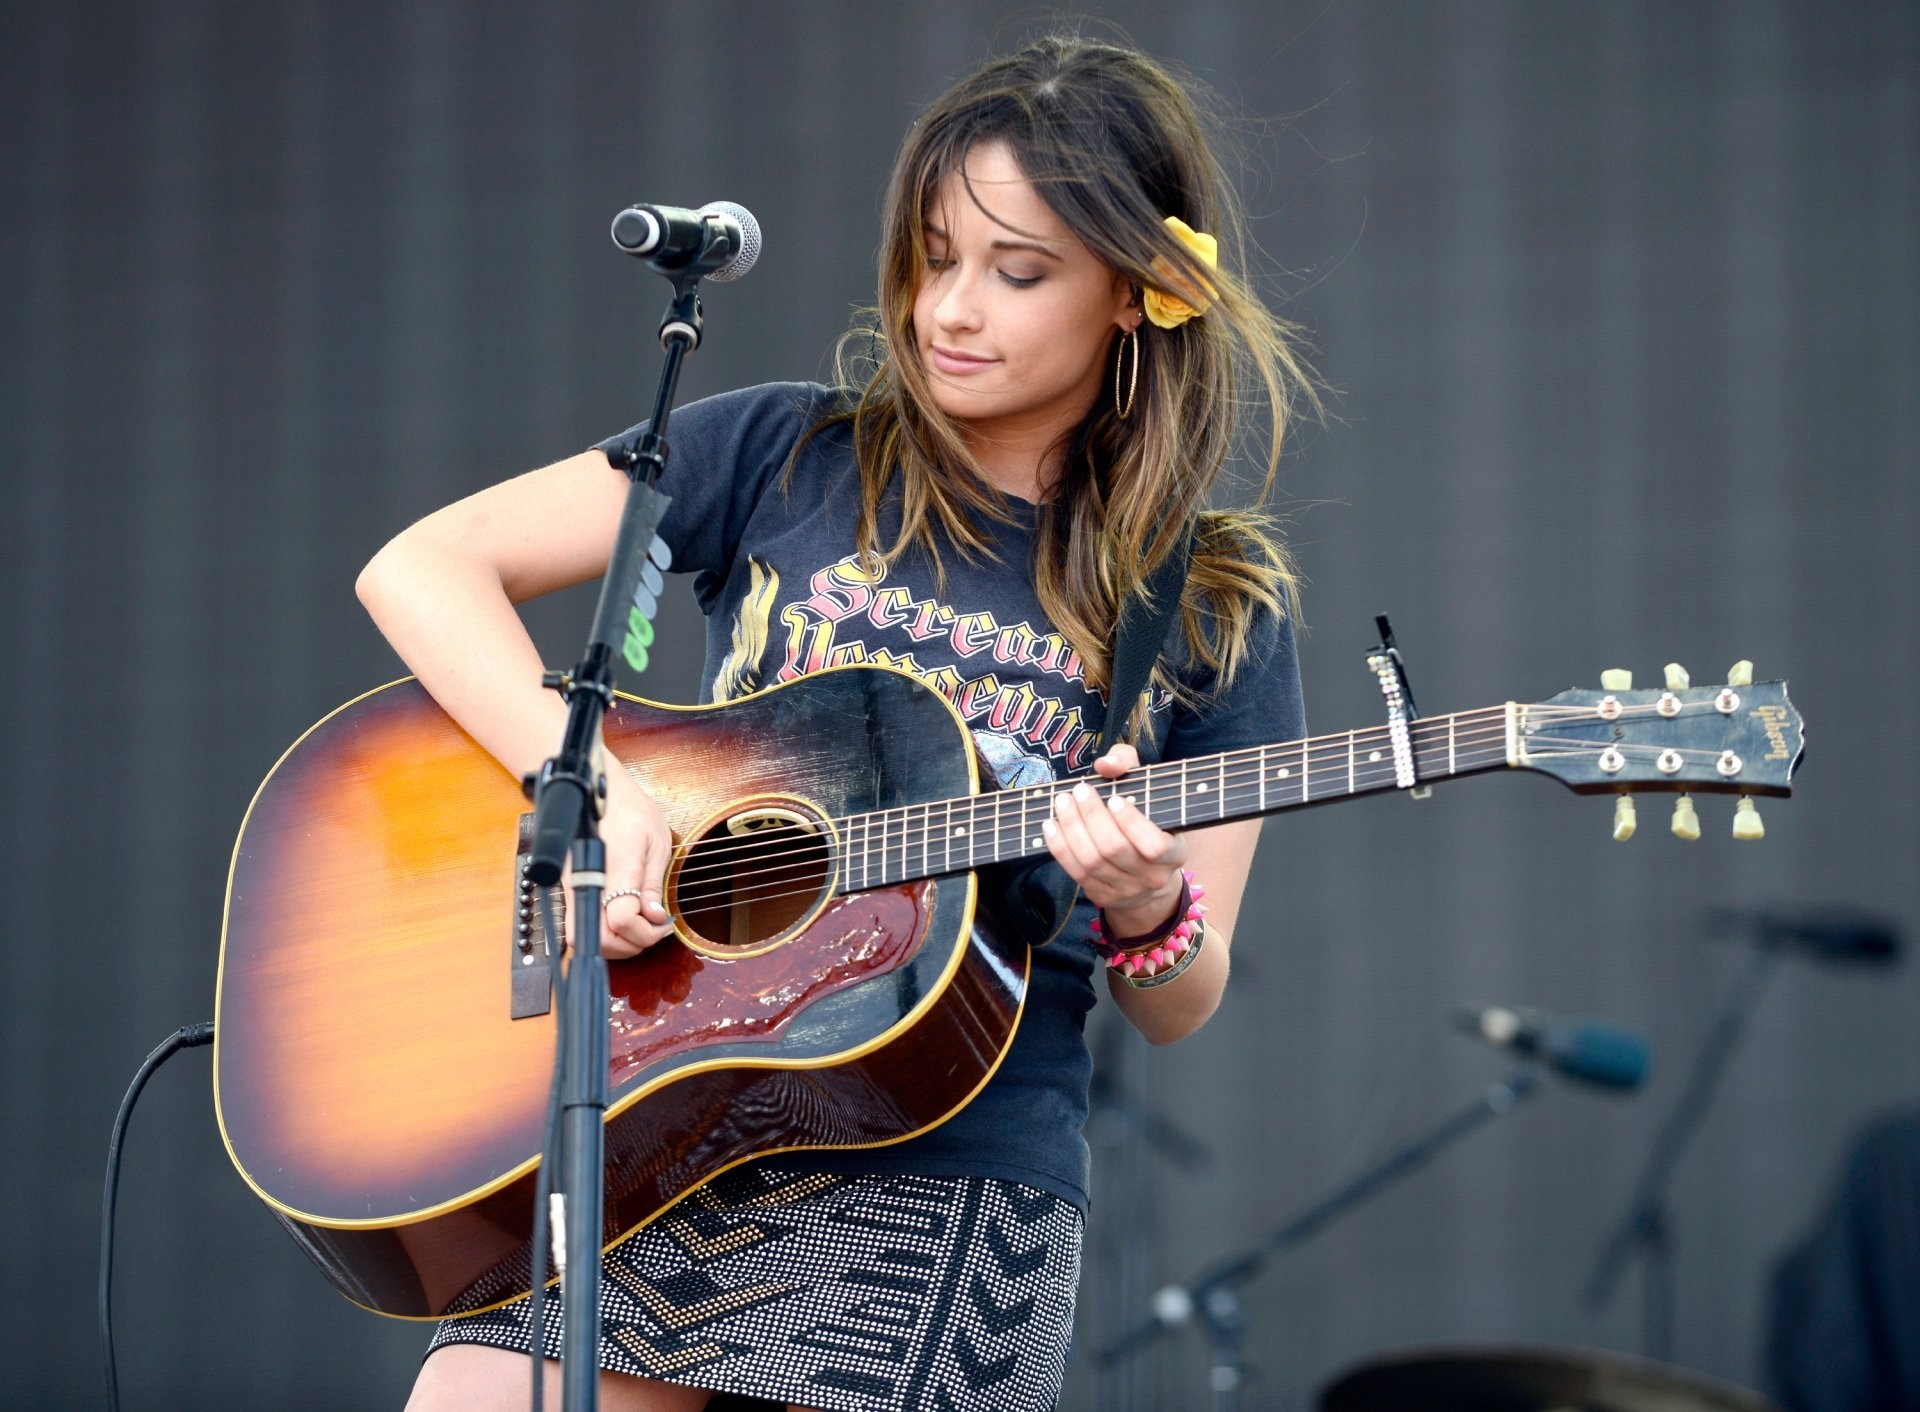 kacey musgraves casey masgreyvs is an american country music singer vocals  guitars live statement